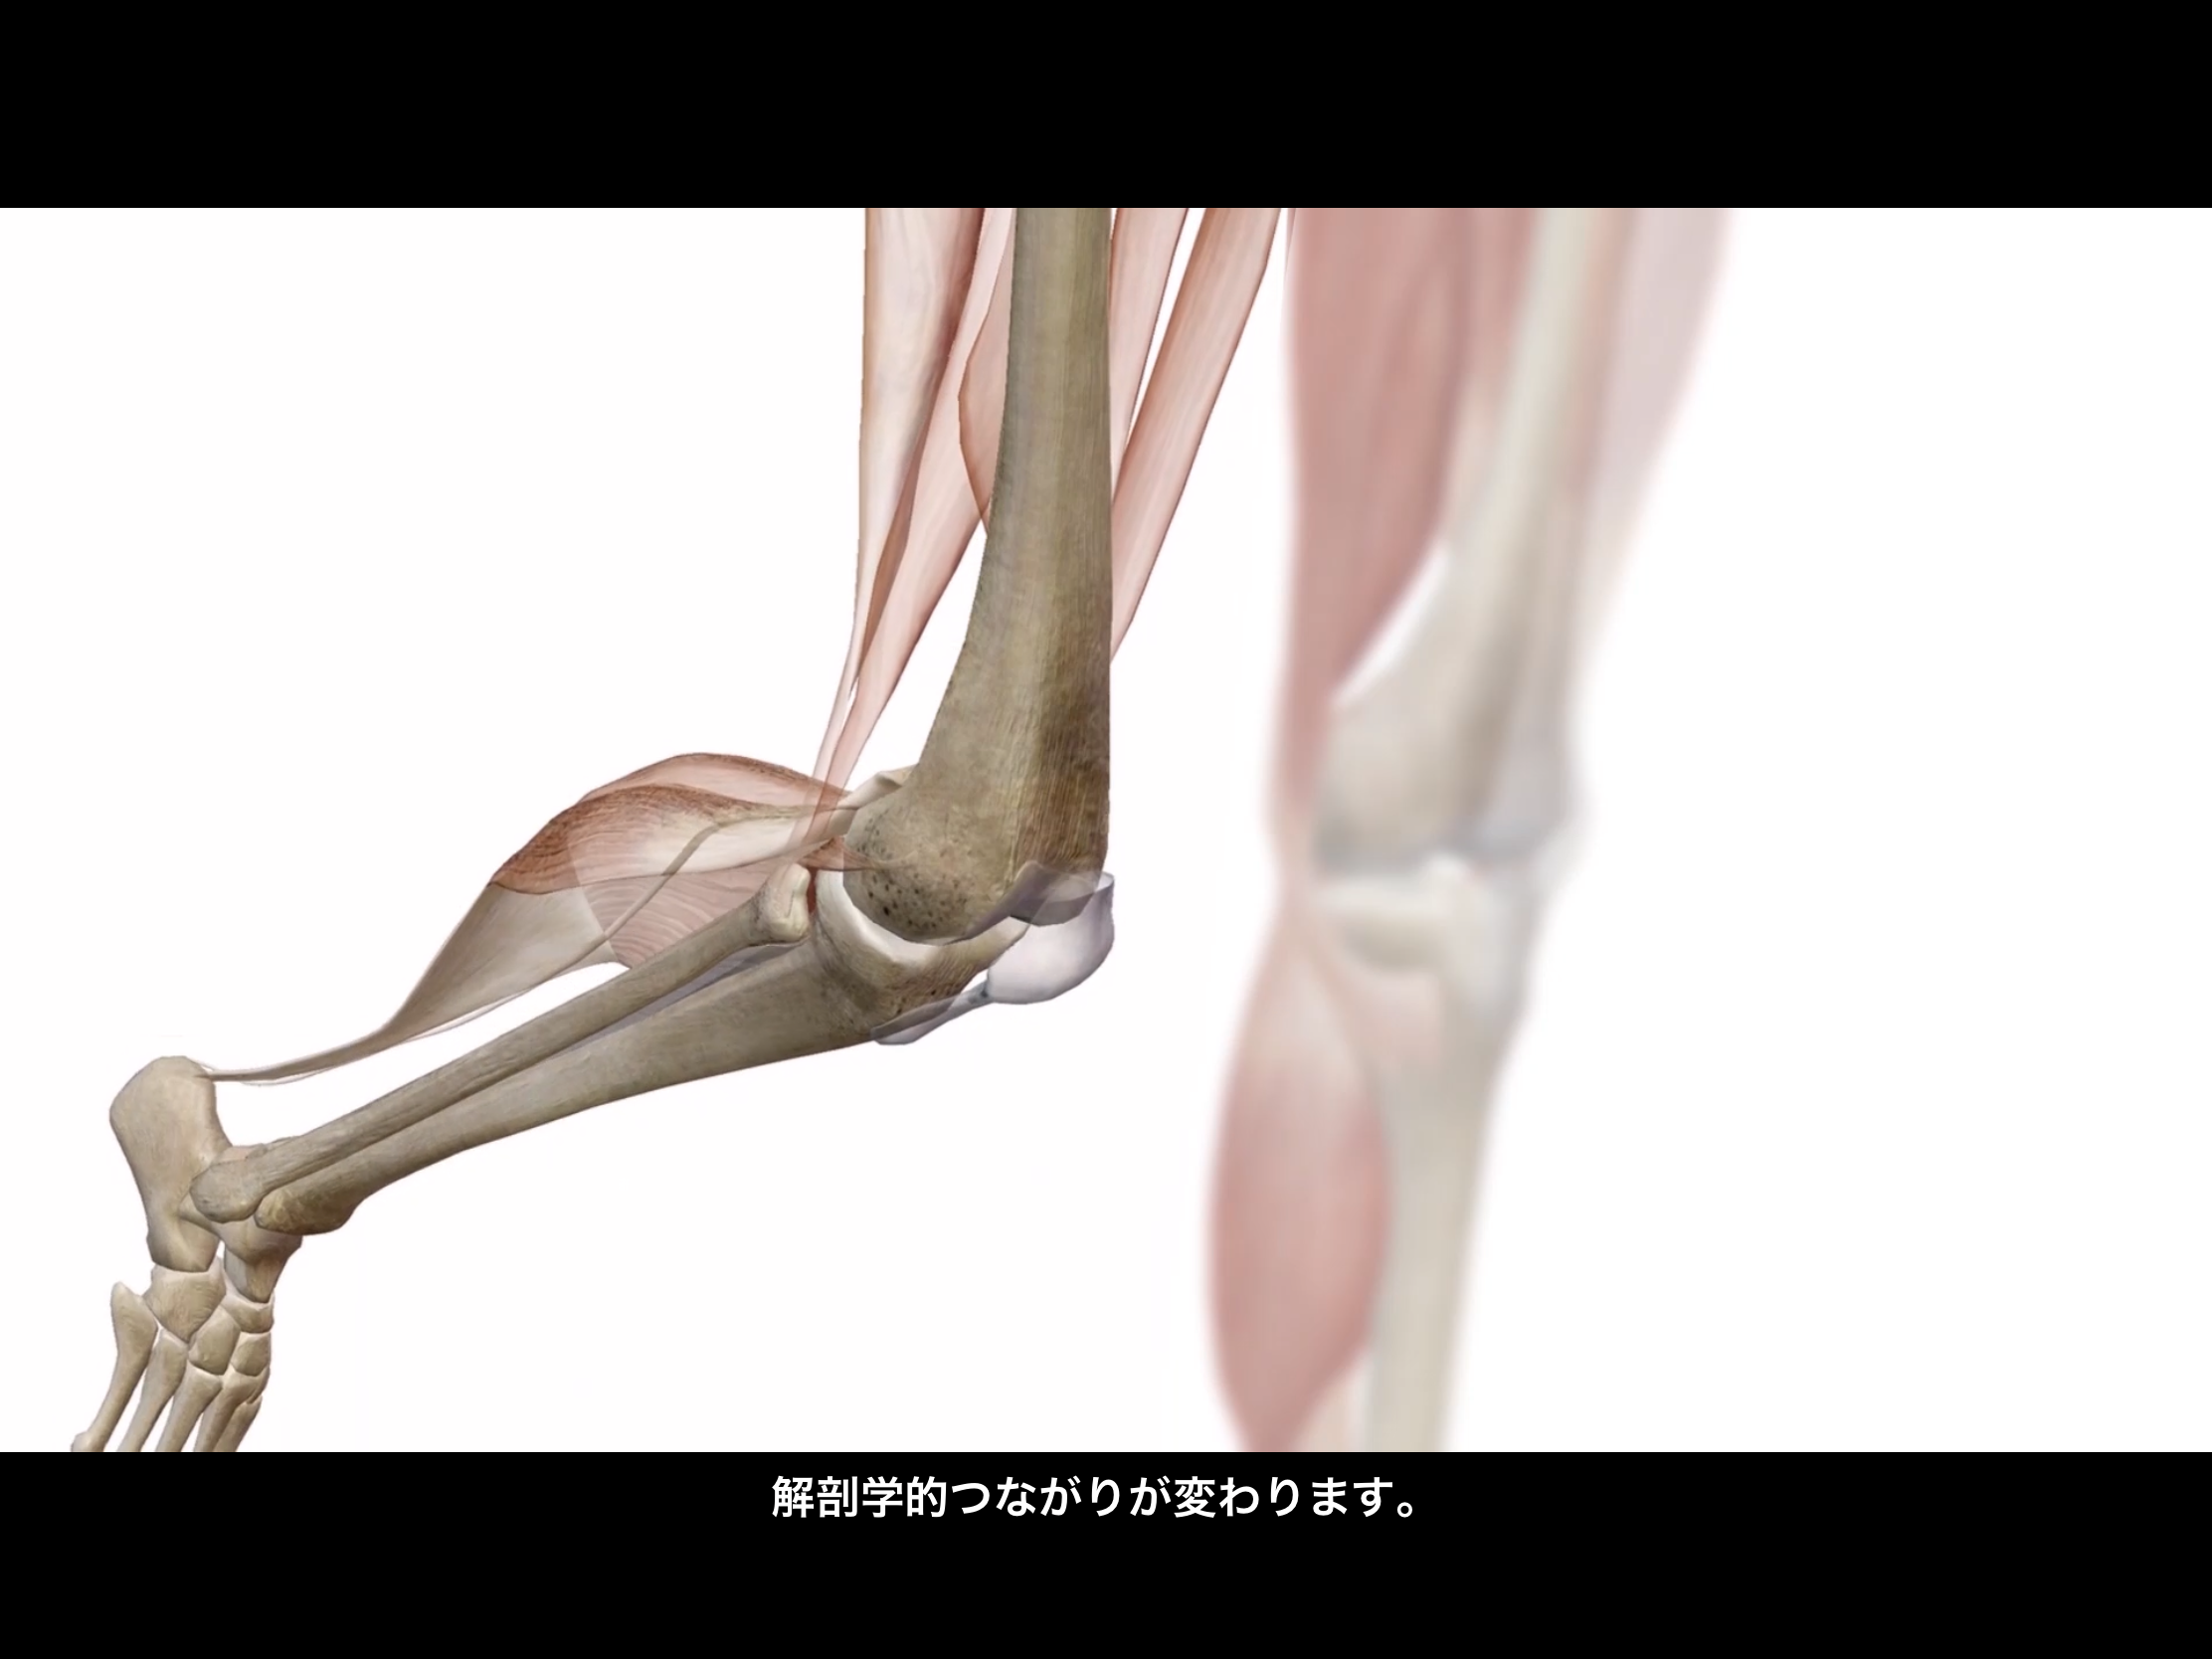 Thumbnail of Visible Body Muscle Premium 3D model expert videos